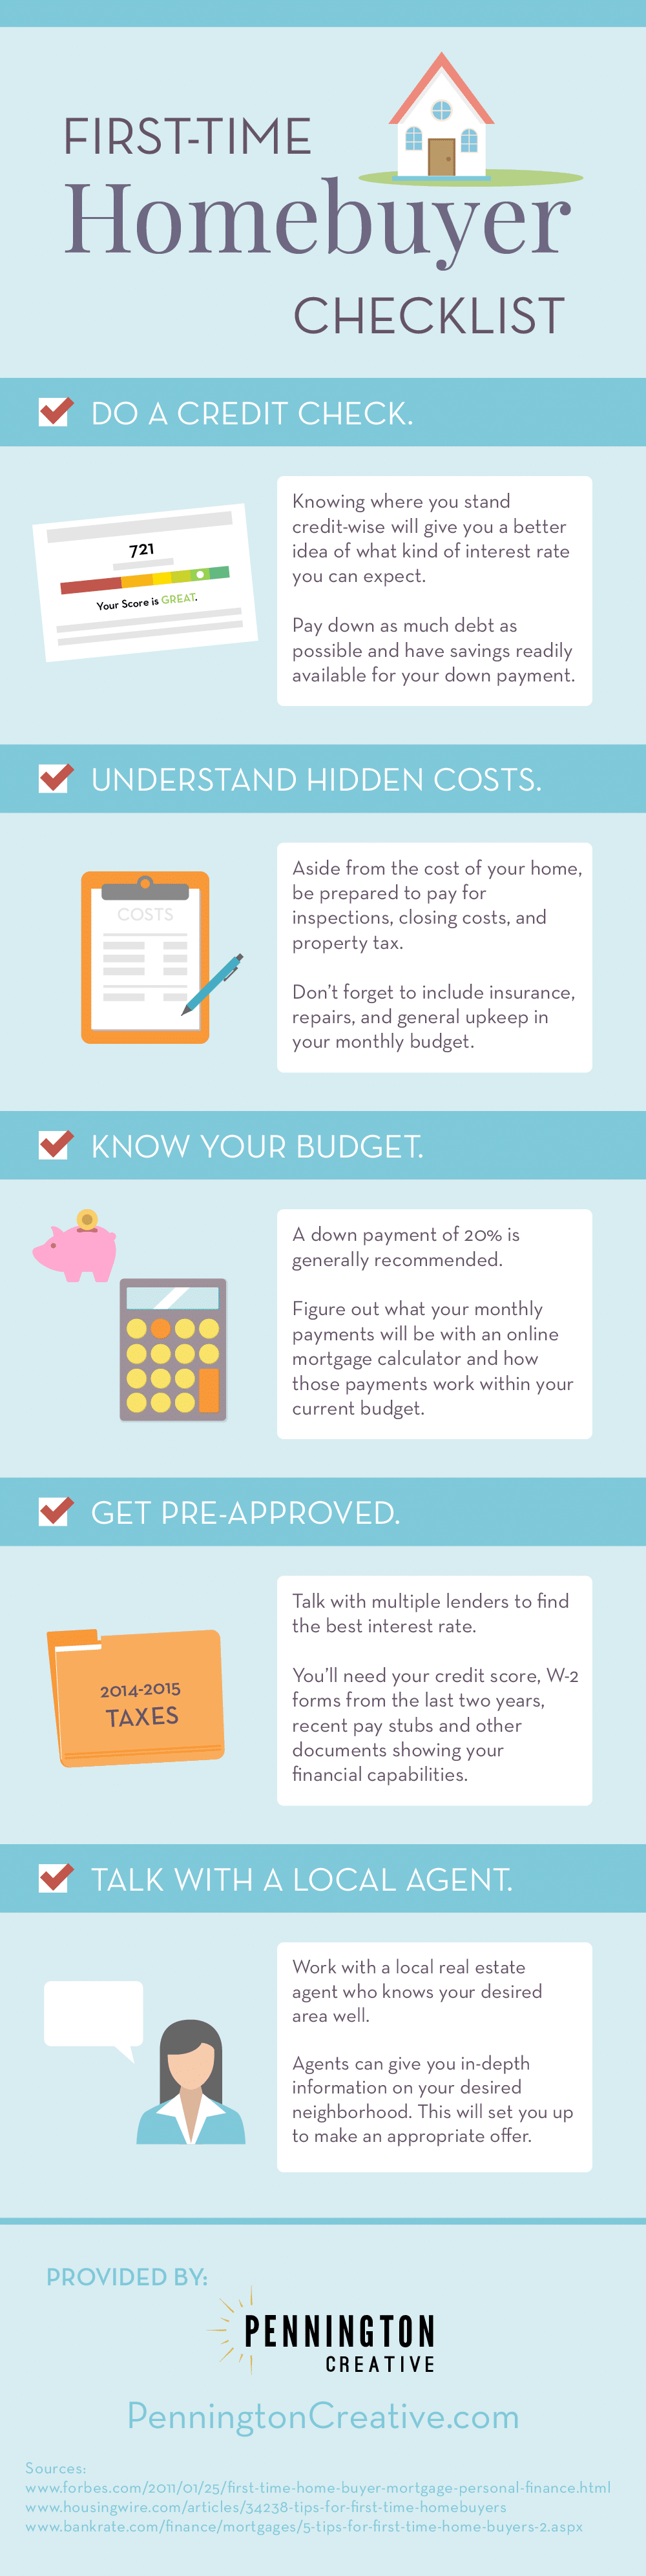 First-Time Homebuyer Checklist Infographic